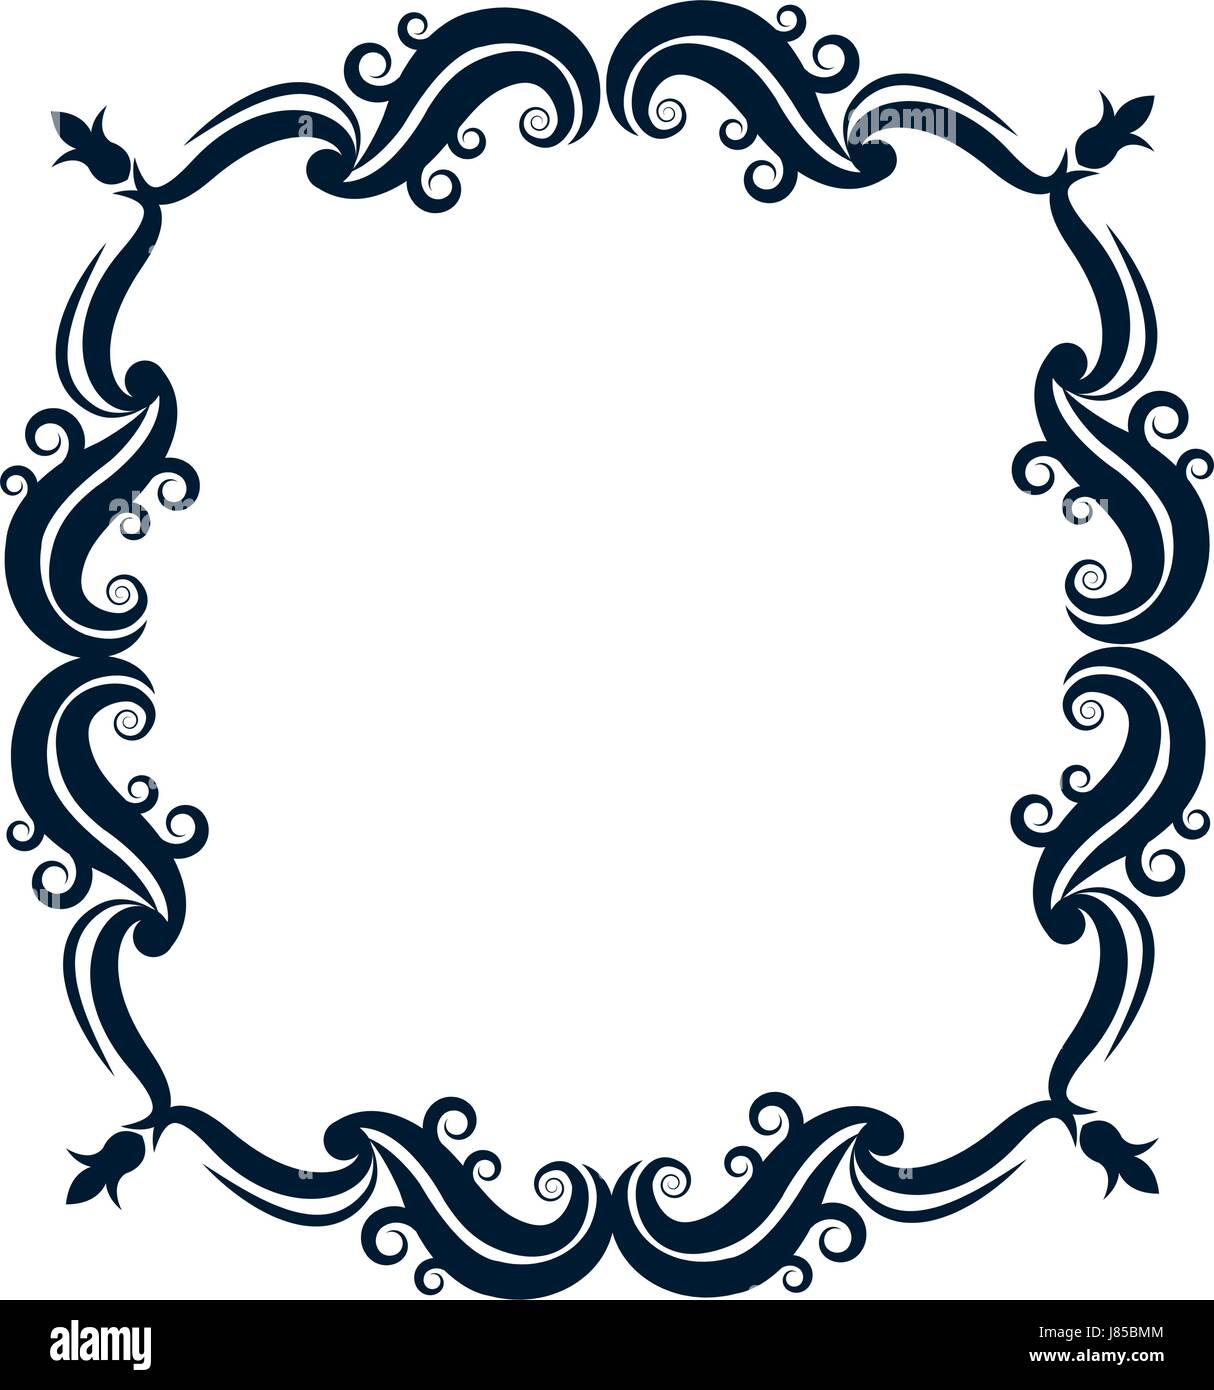 vintage ornate wreath and scroll banner stock vector art